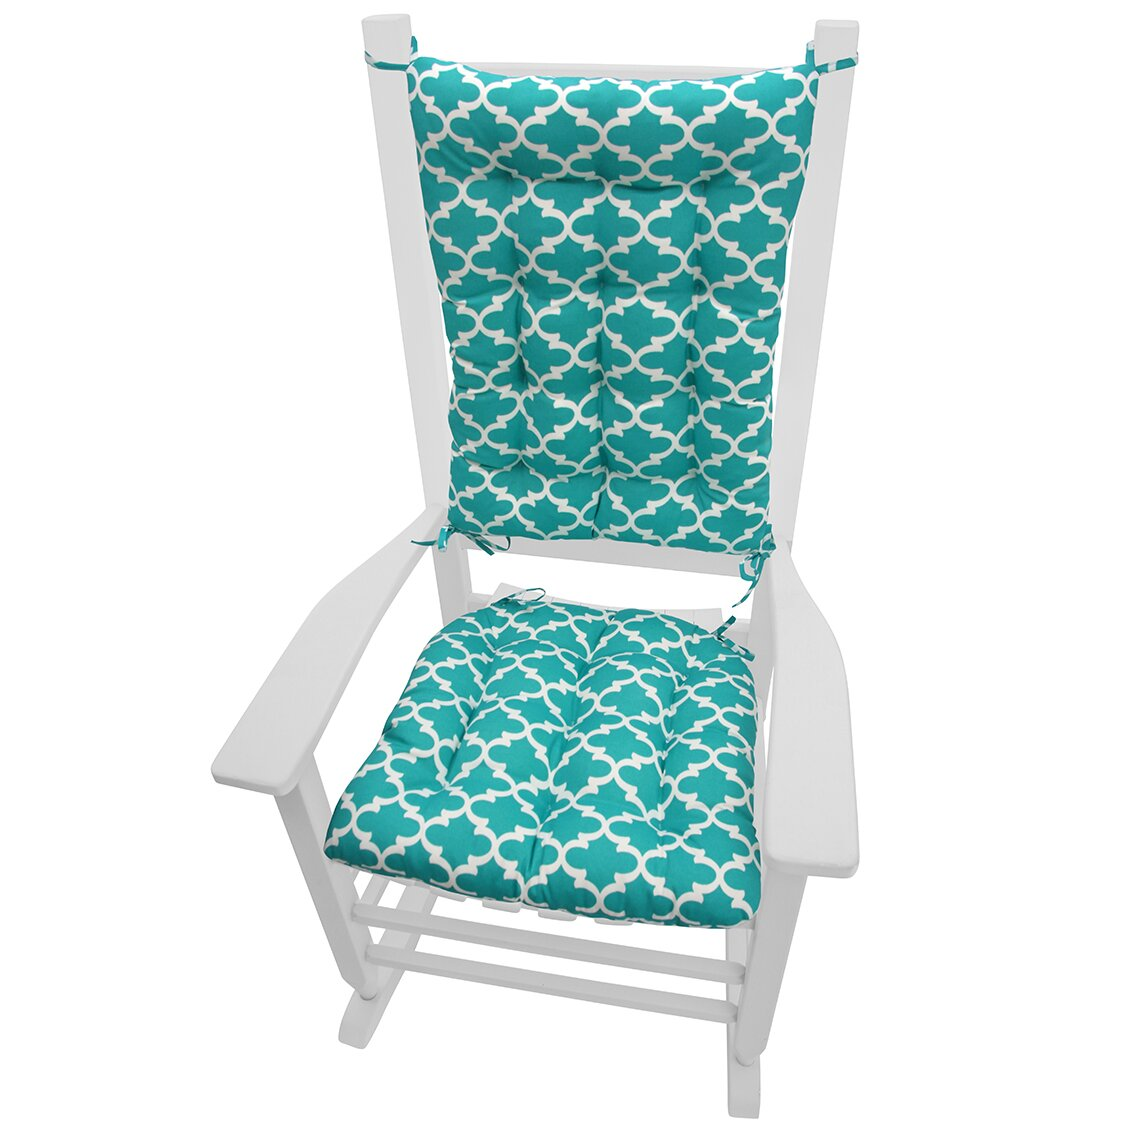 Barnett Home Decor Garden Outdoor Rocking Chair Cushion